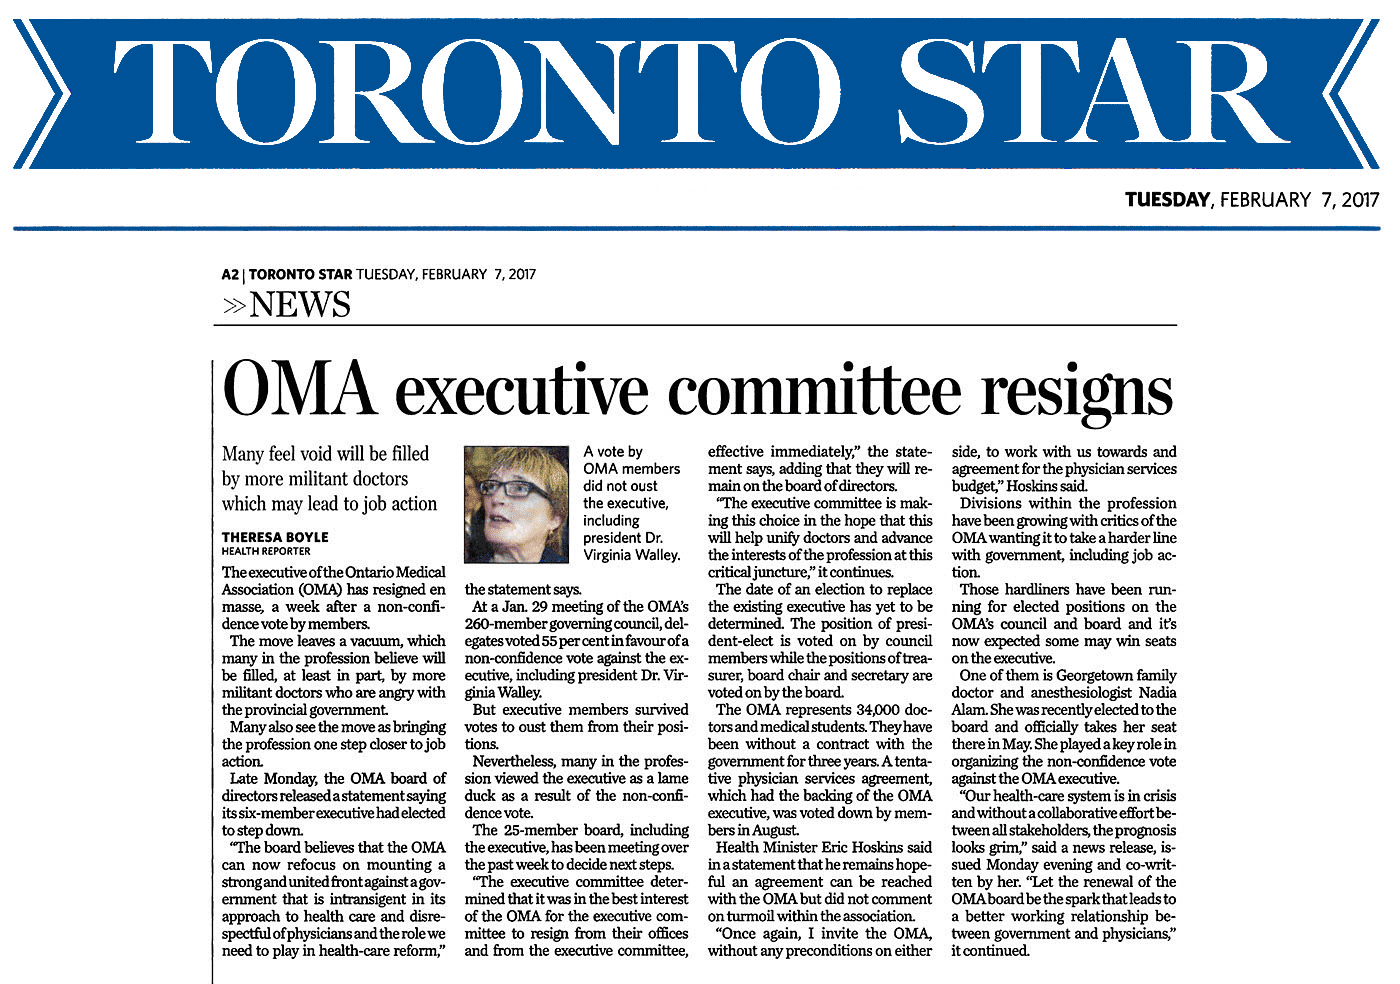 Toronto Star 2017-02-07 - OMA executive committee resigns